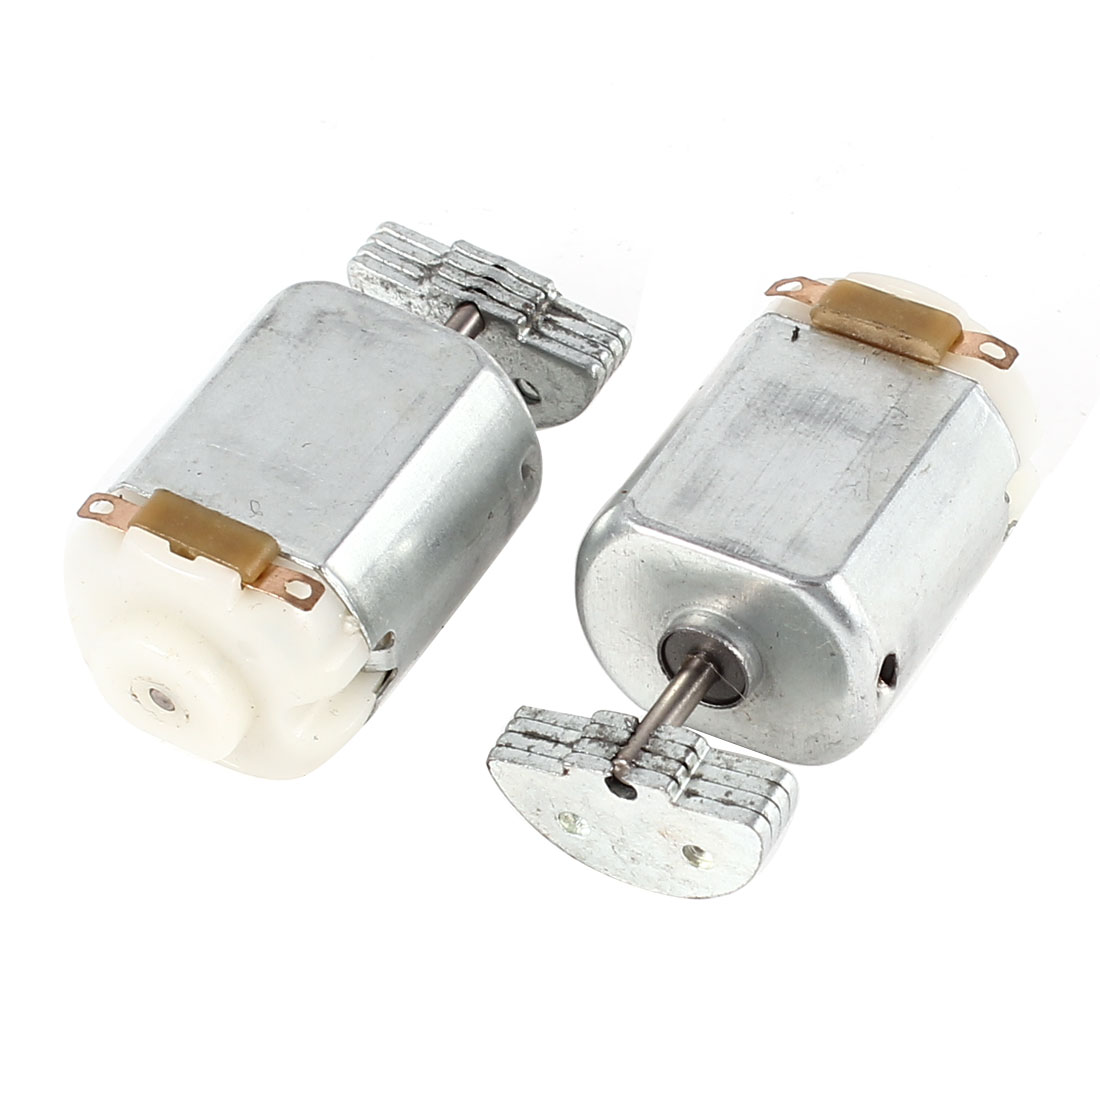 2 Pcs Mini Vibration Vibrating Electric Motor DC 3V 5000RPM for Massager Device